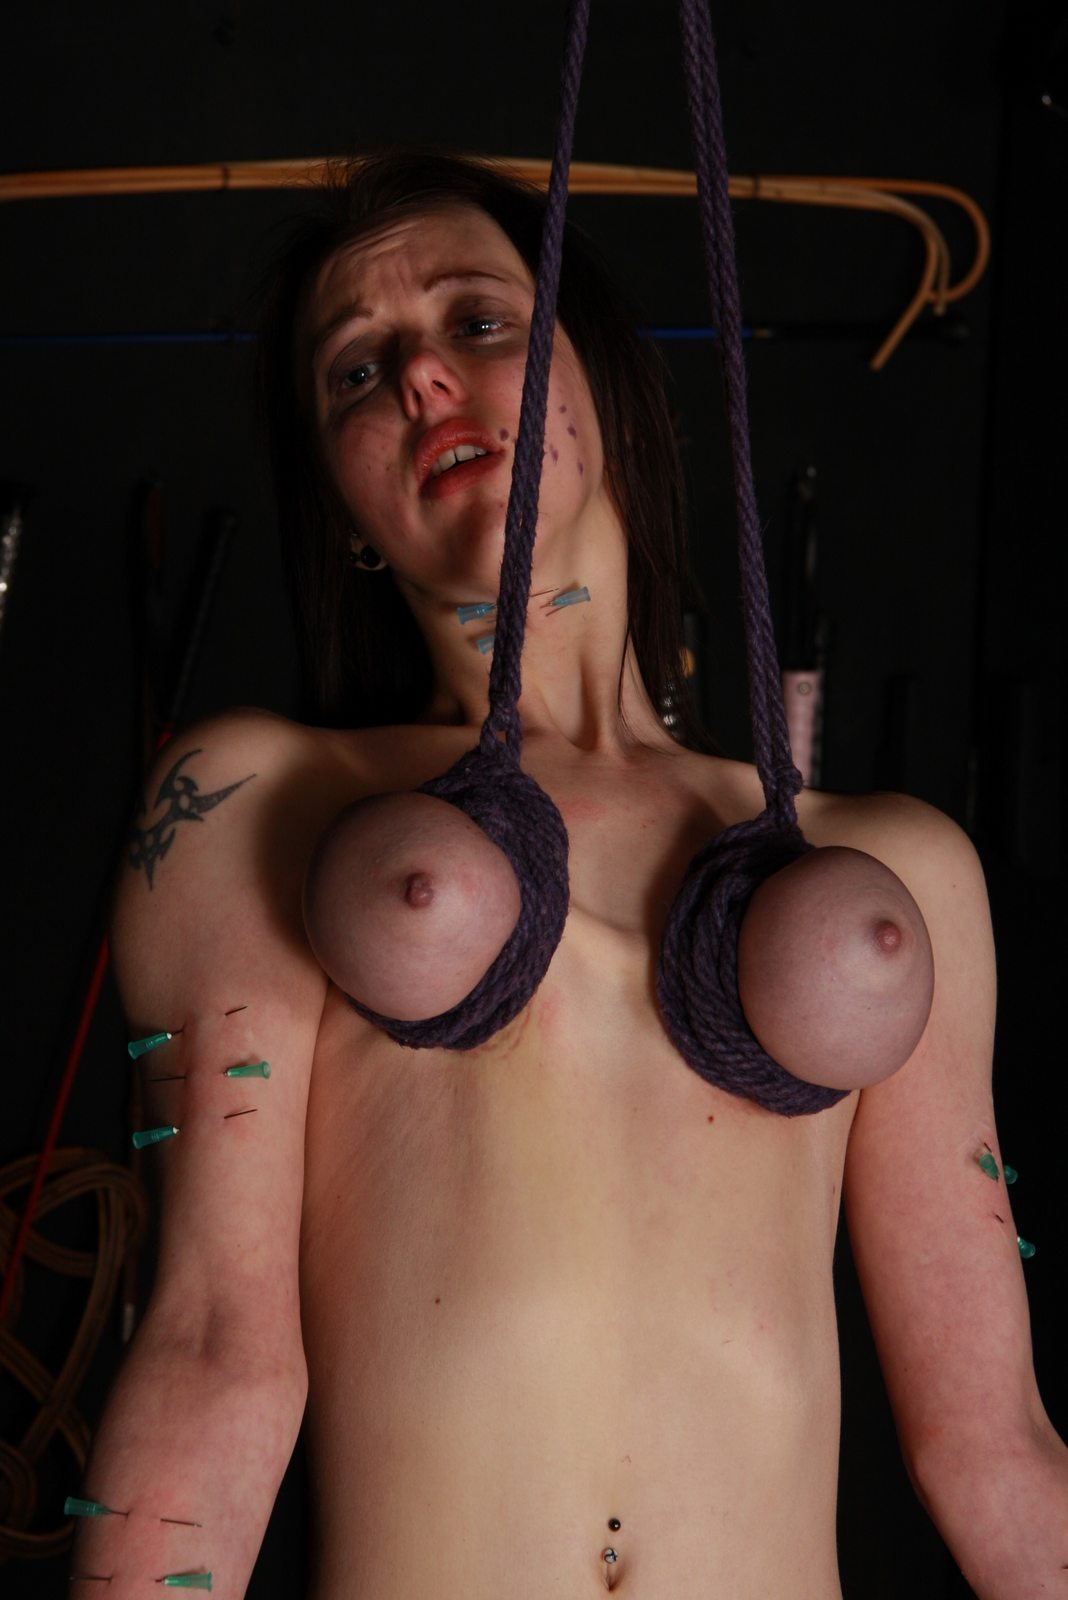 Consider, bondage needle torture agree